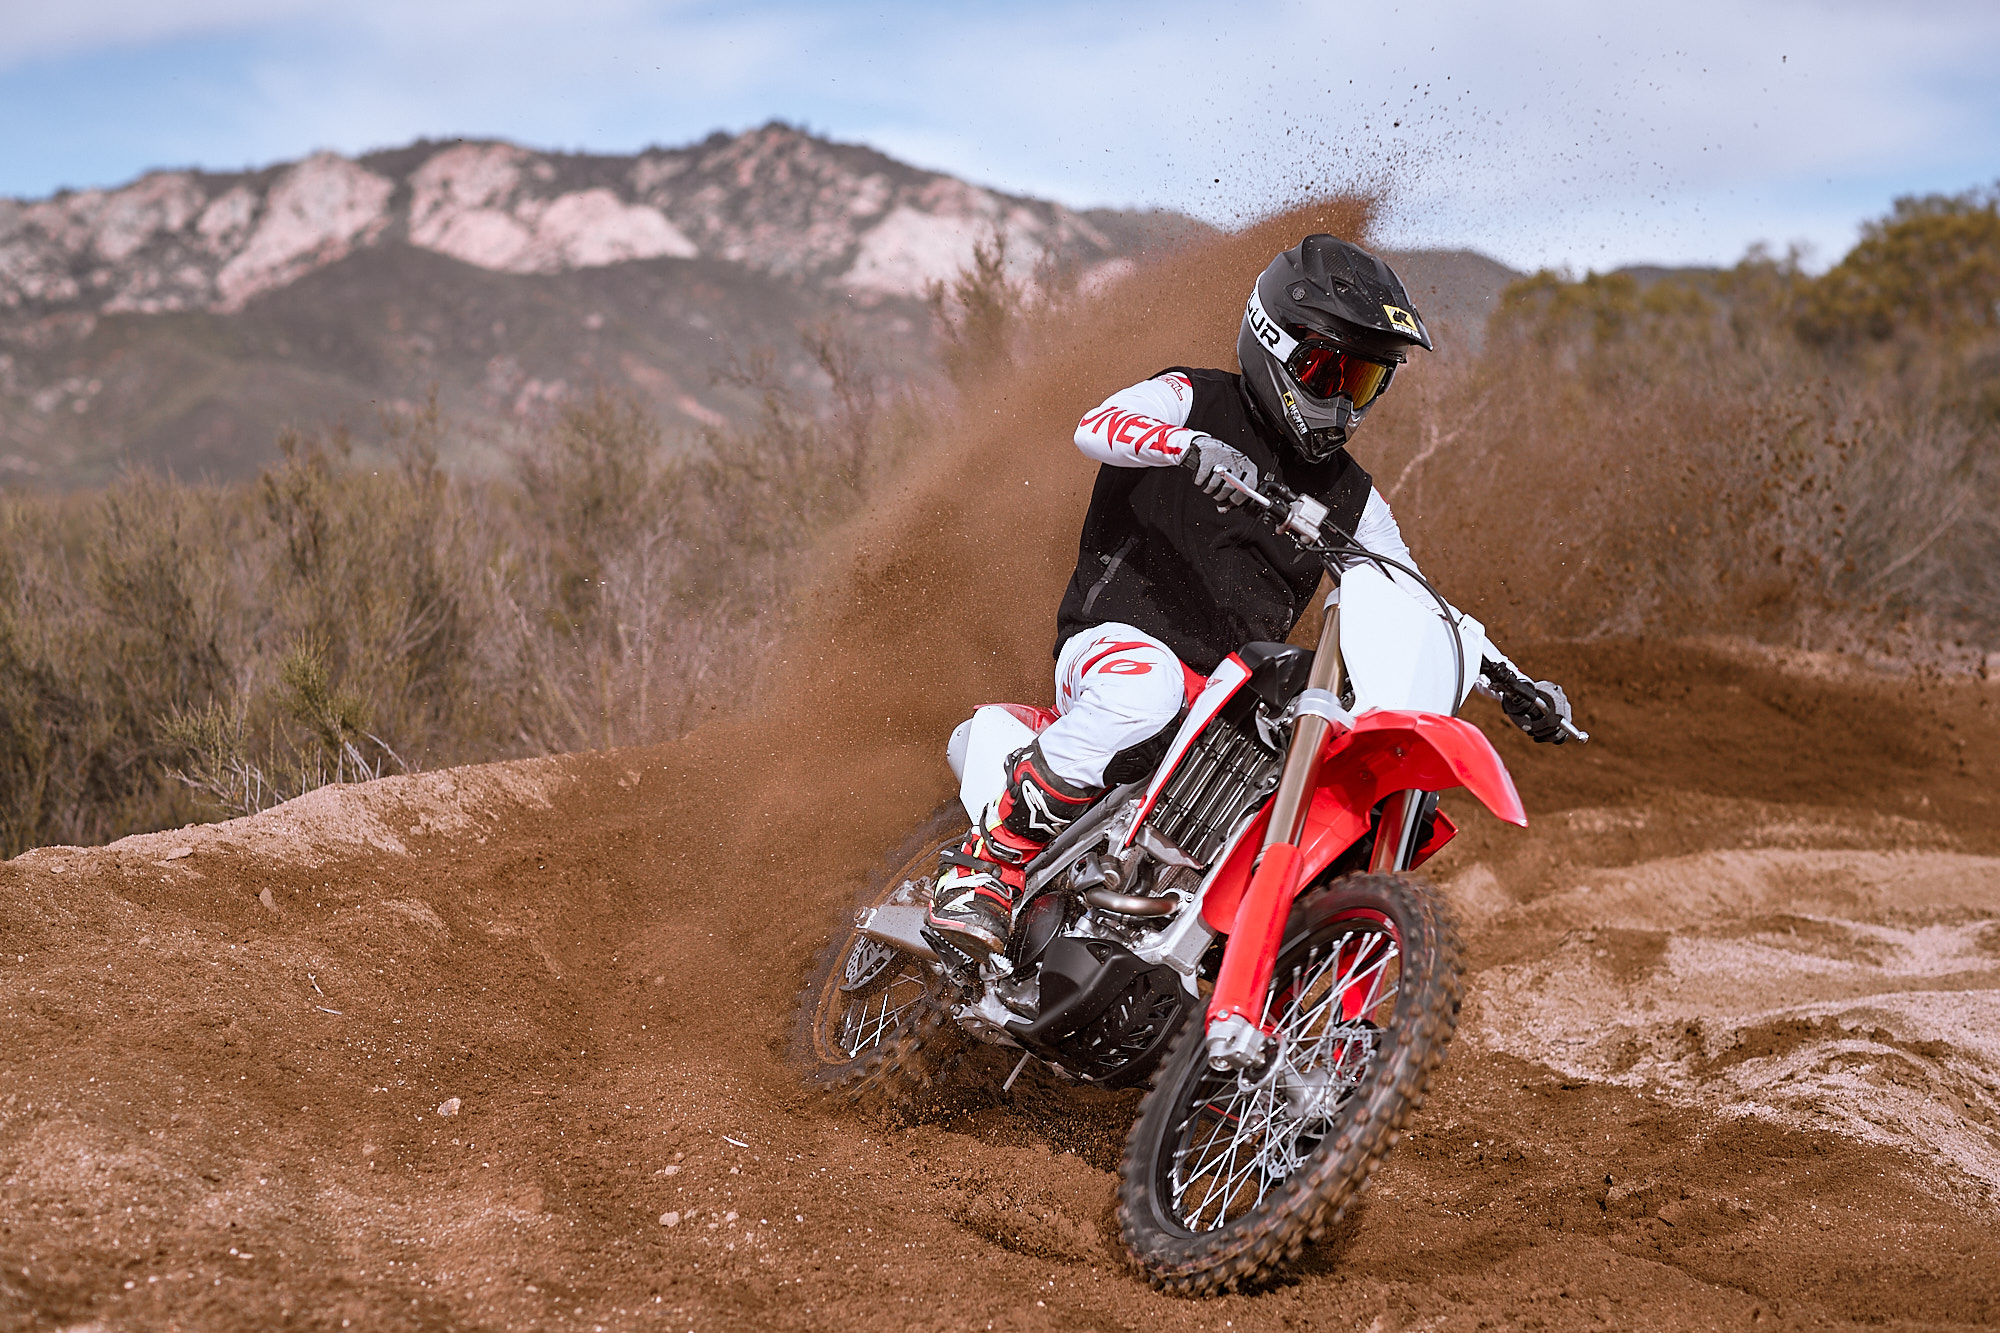 The Honda loves to carve up some berms.